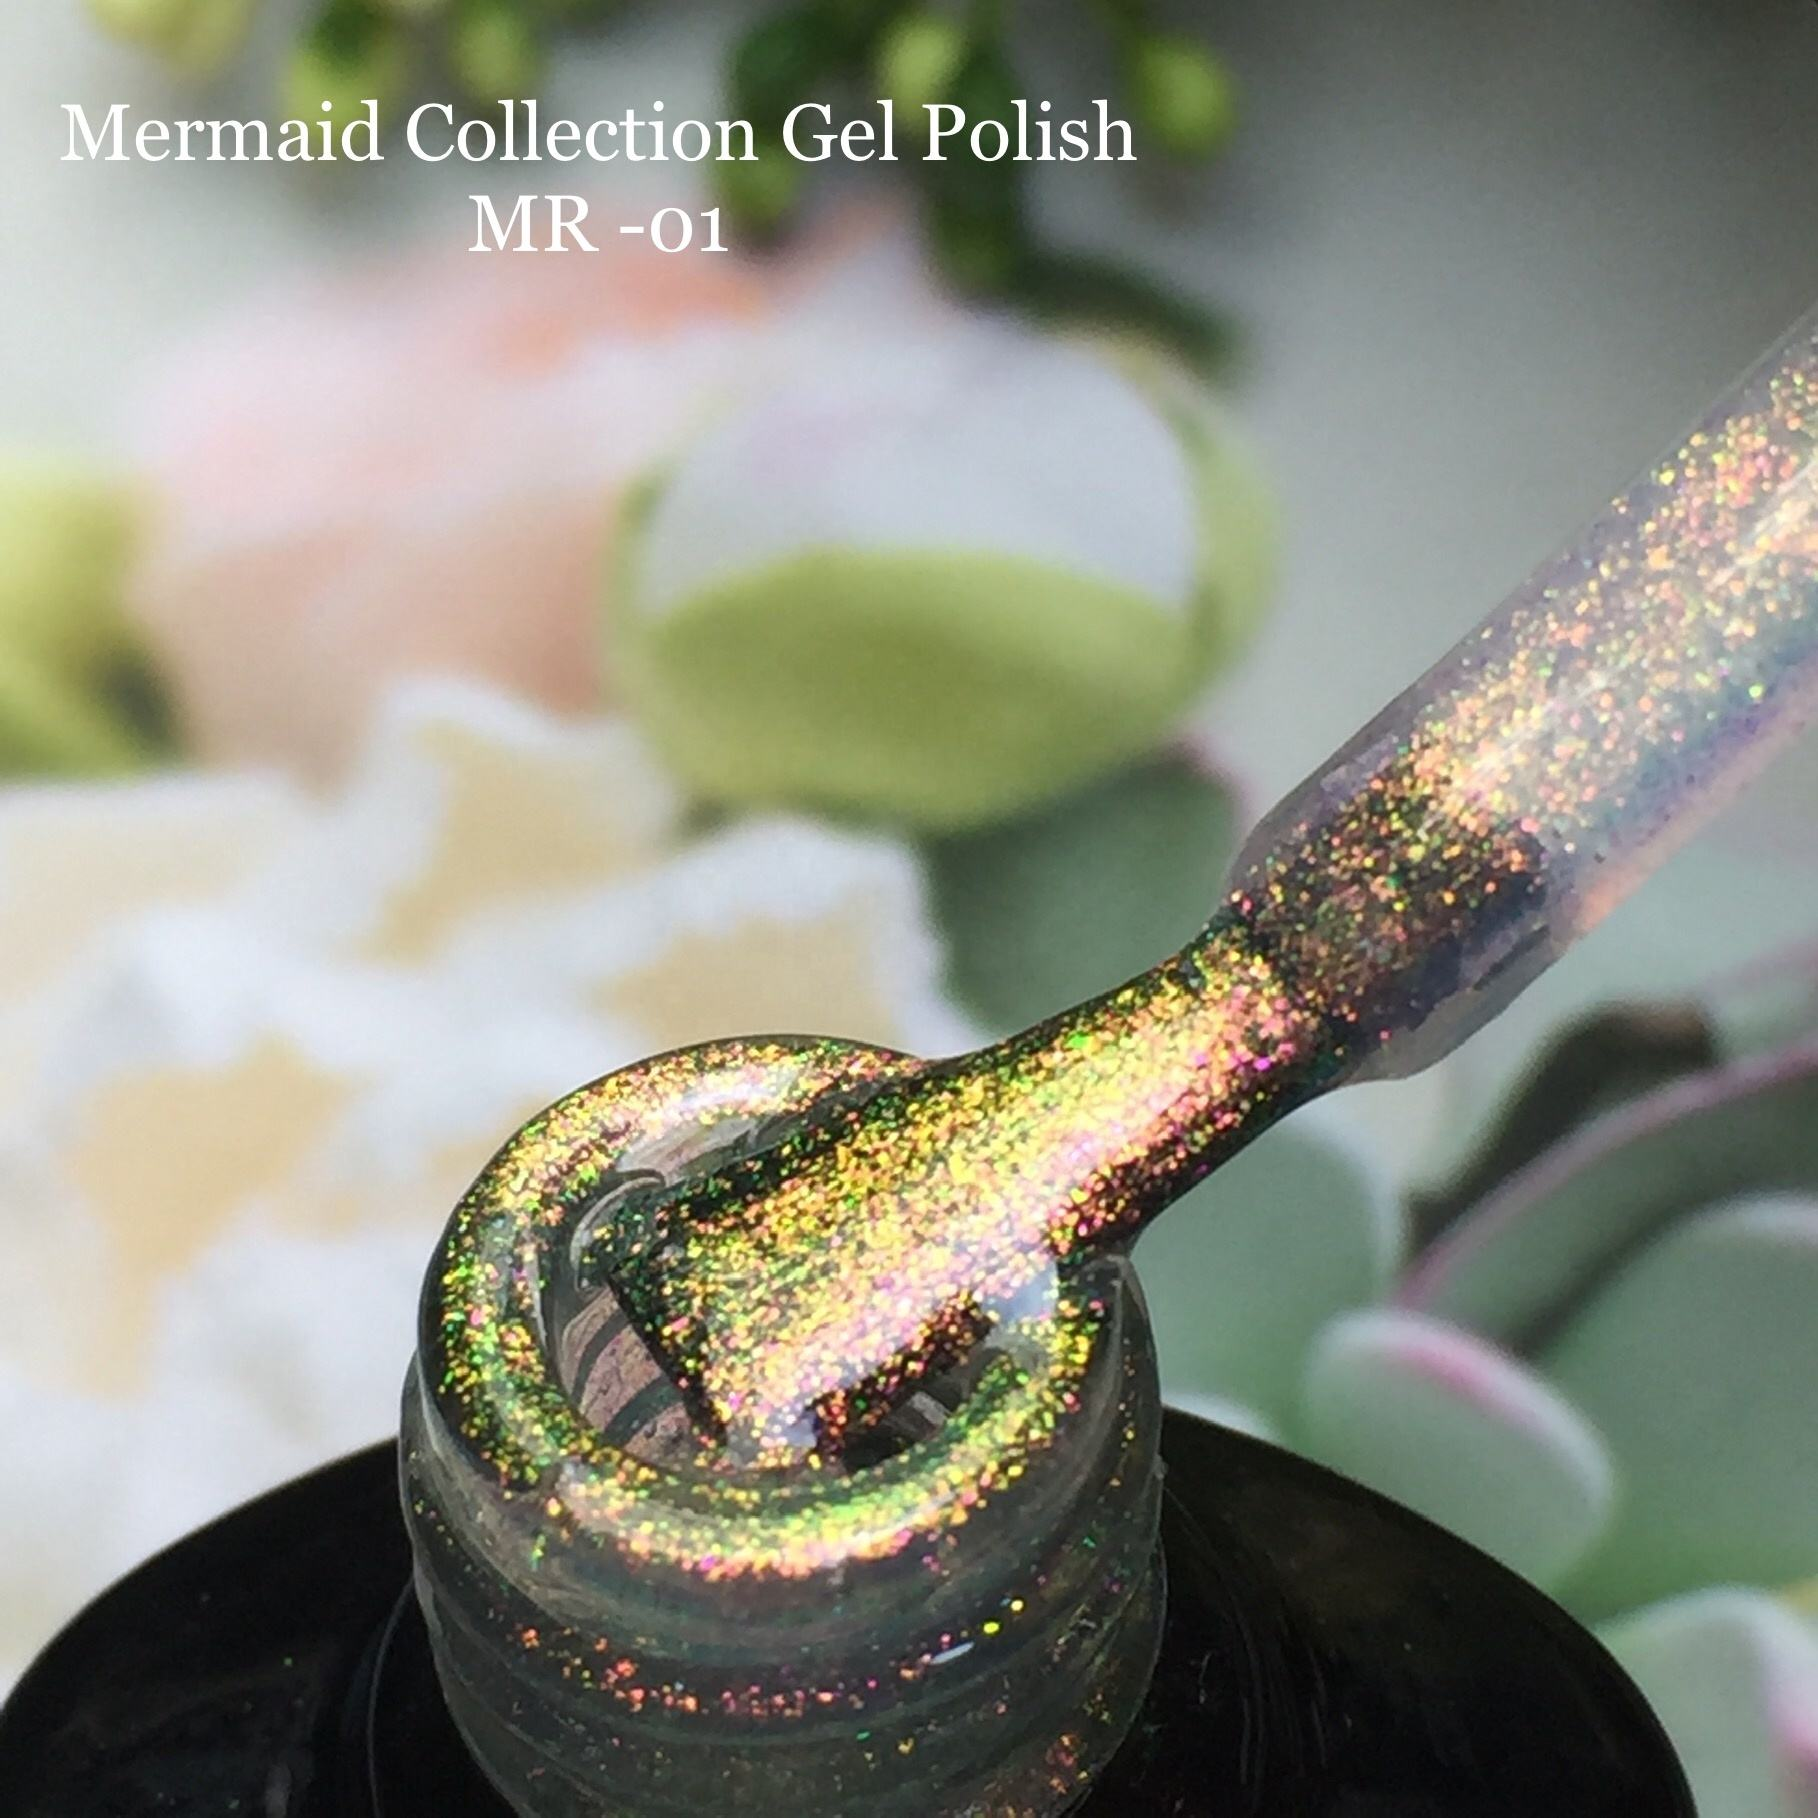 Meerjungfrau sammlung gel <span class=keywords><strong>polnischen</strong></span> nude natürliche farbe transparent shiny glitter <span class=keywords><strong>DIY</strong></span> nagel gel polnisch lak nagel salon